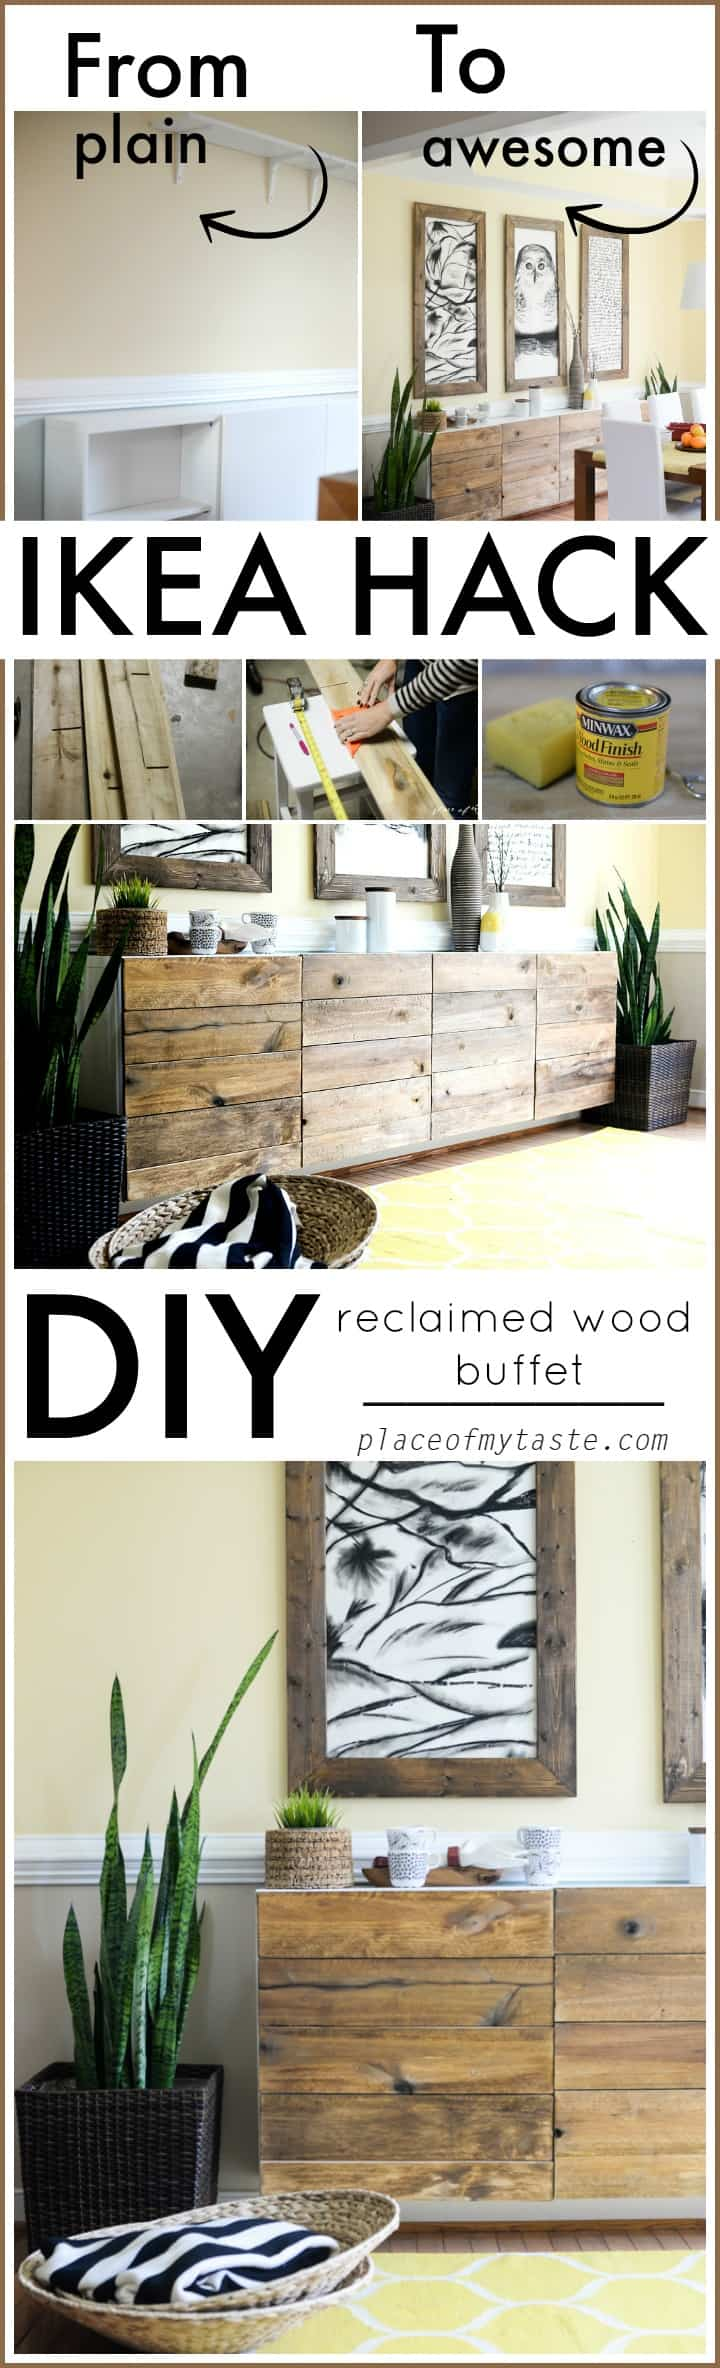 Ikea Hack Wohnzimmer Ikea Hacks Diy Reclaimed Wood Buffet